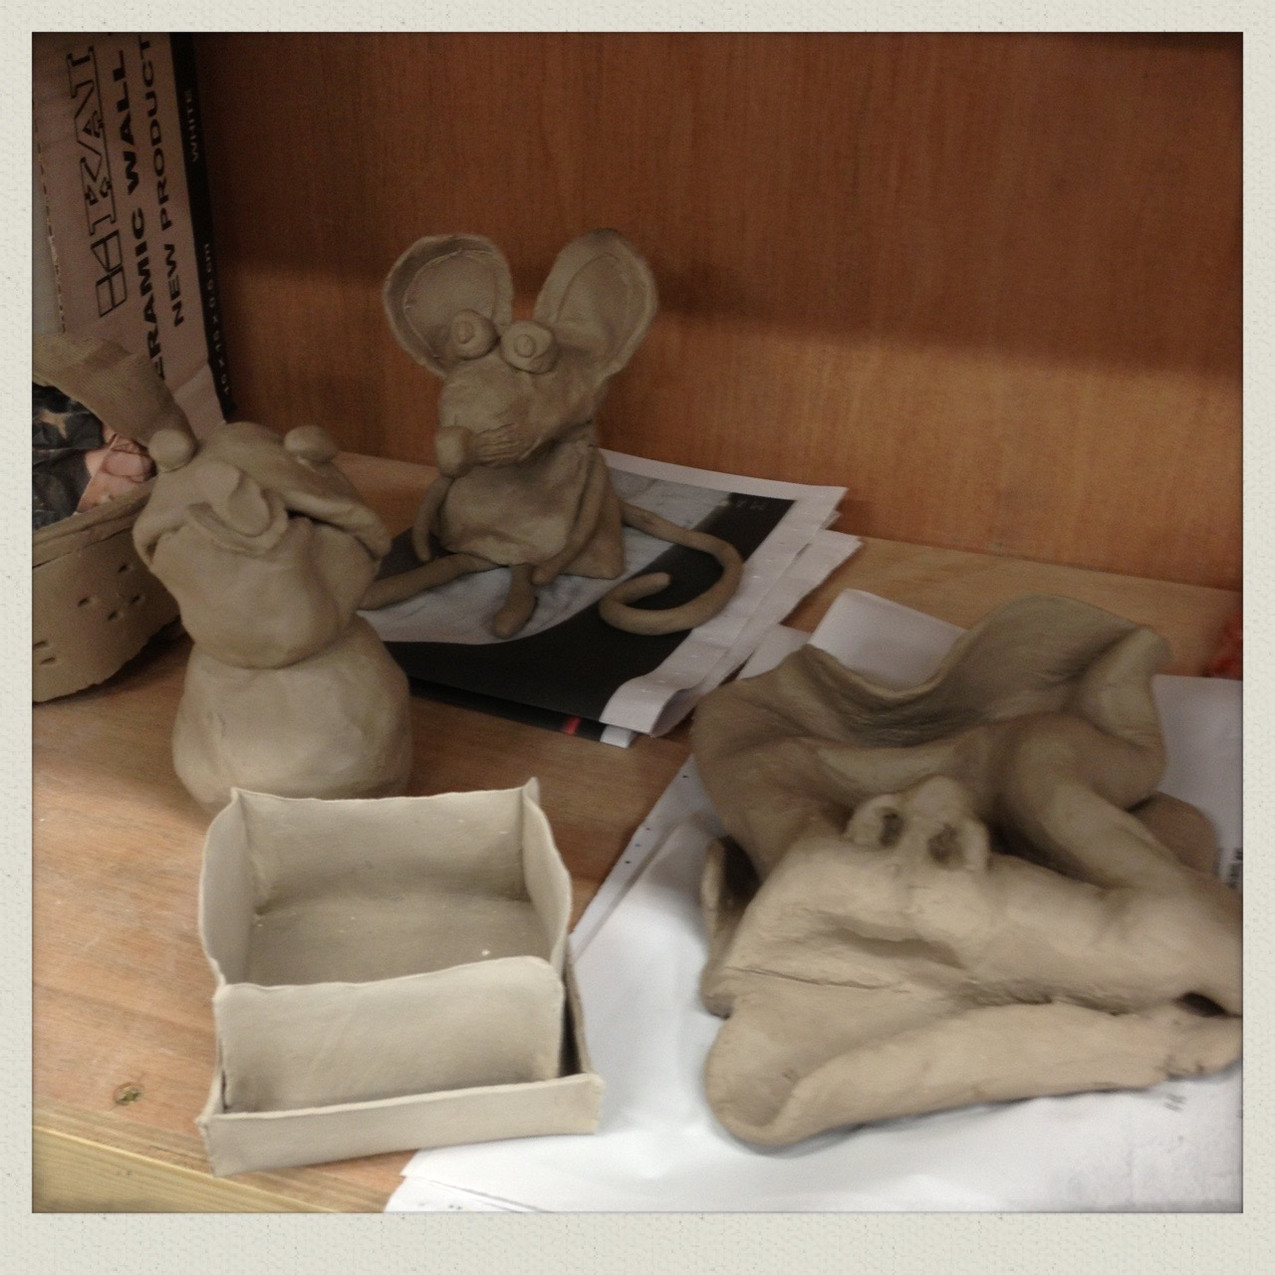 Paper clay work